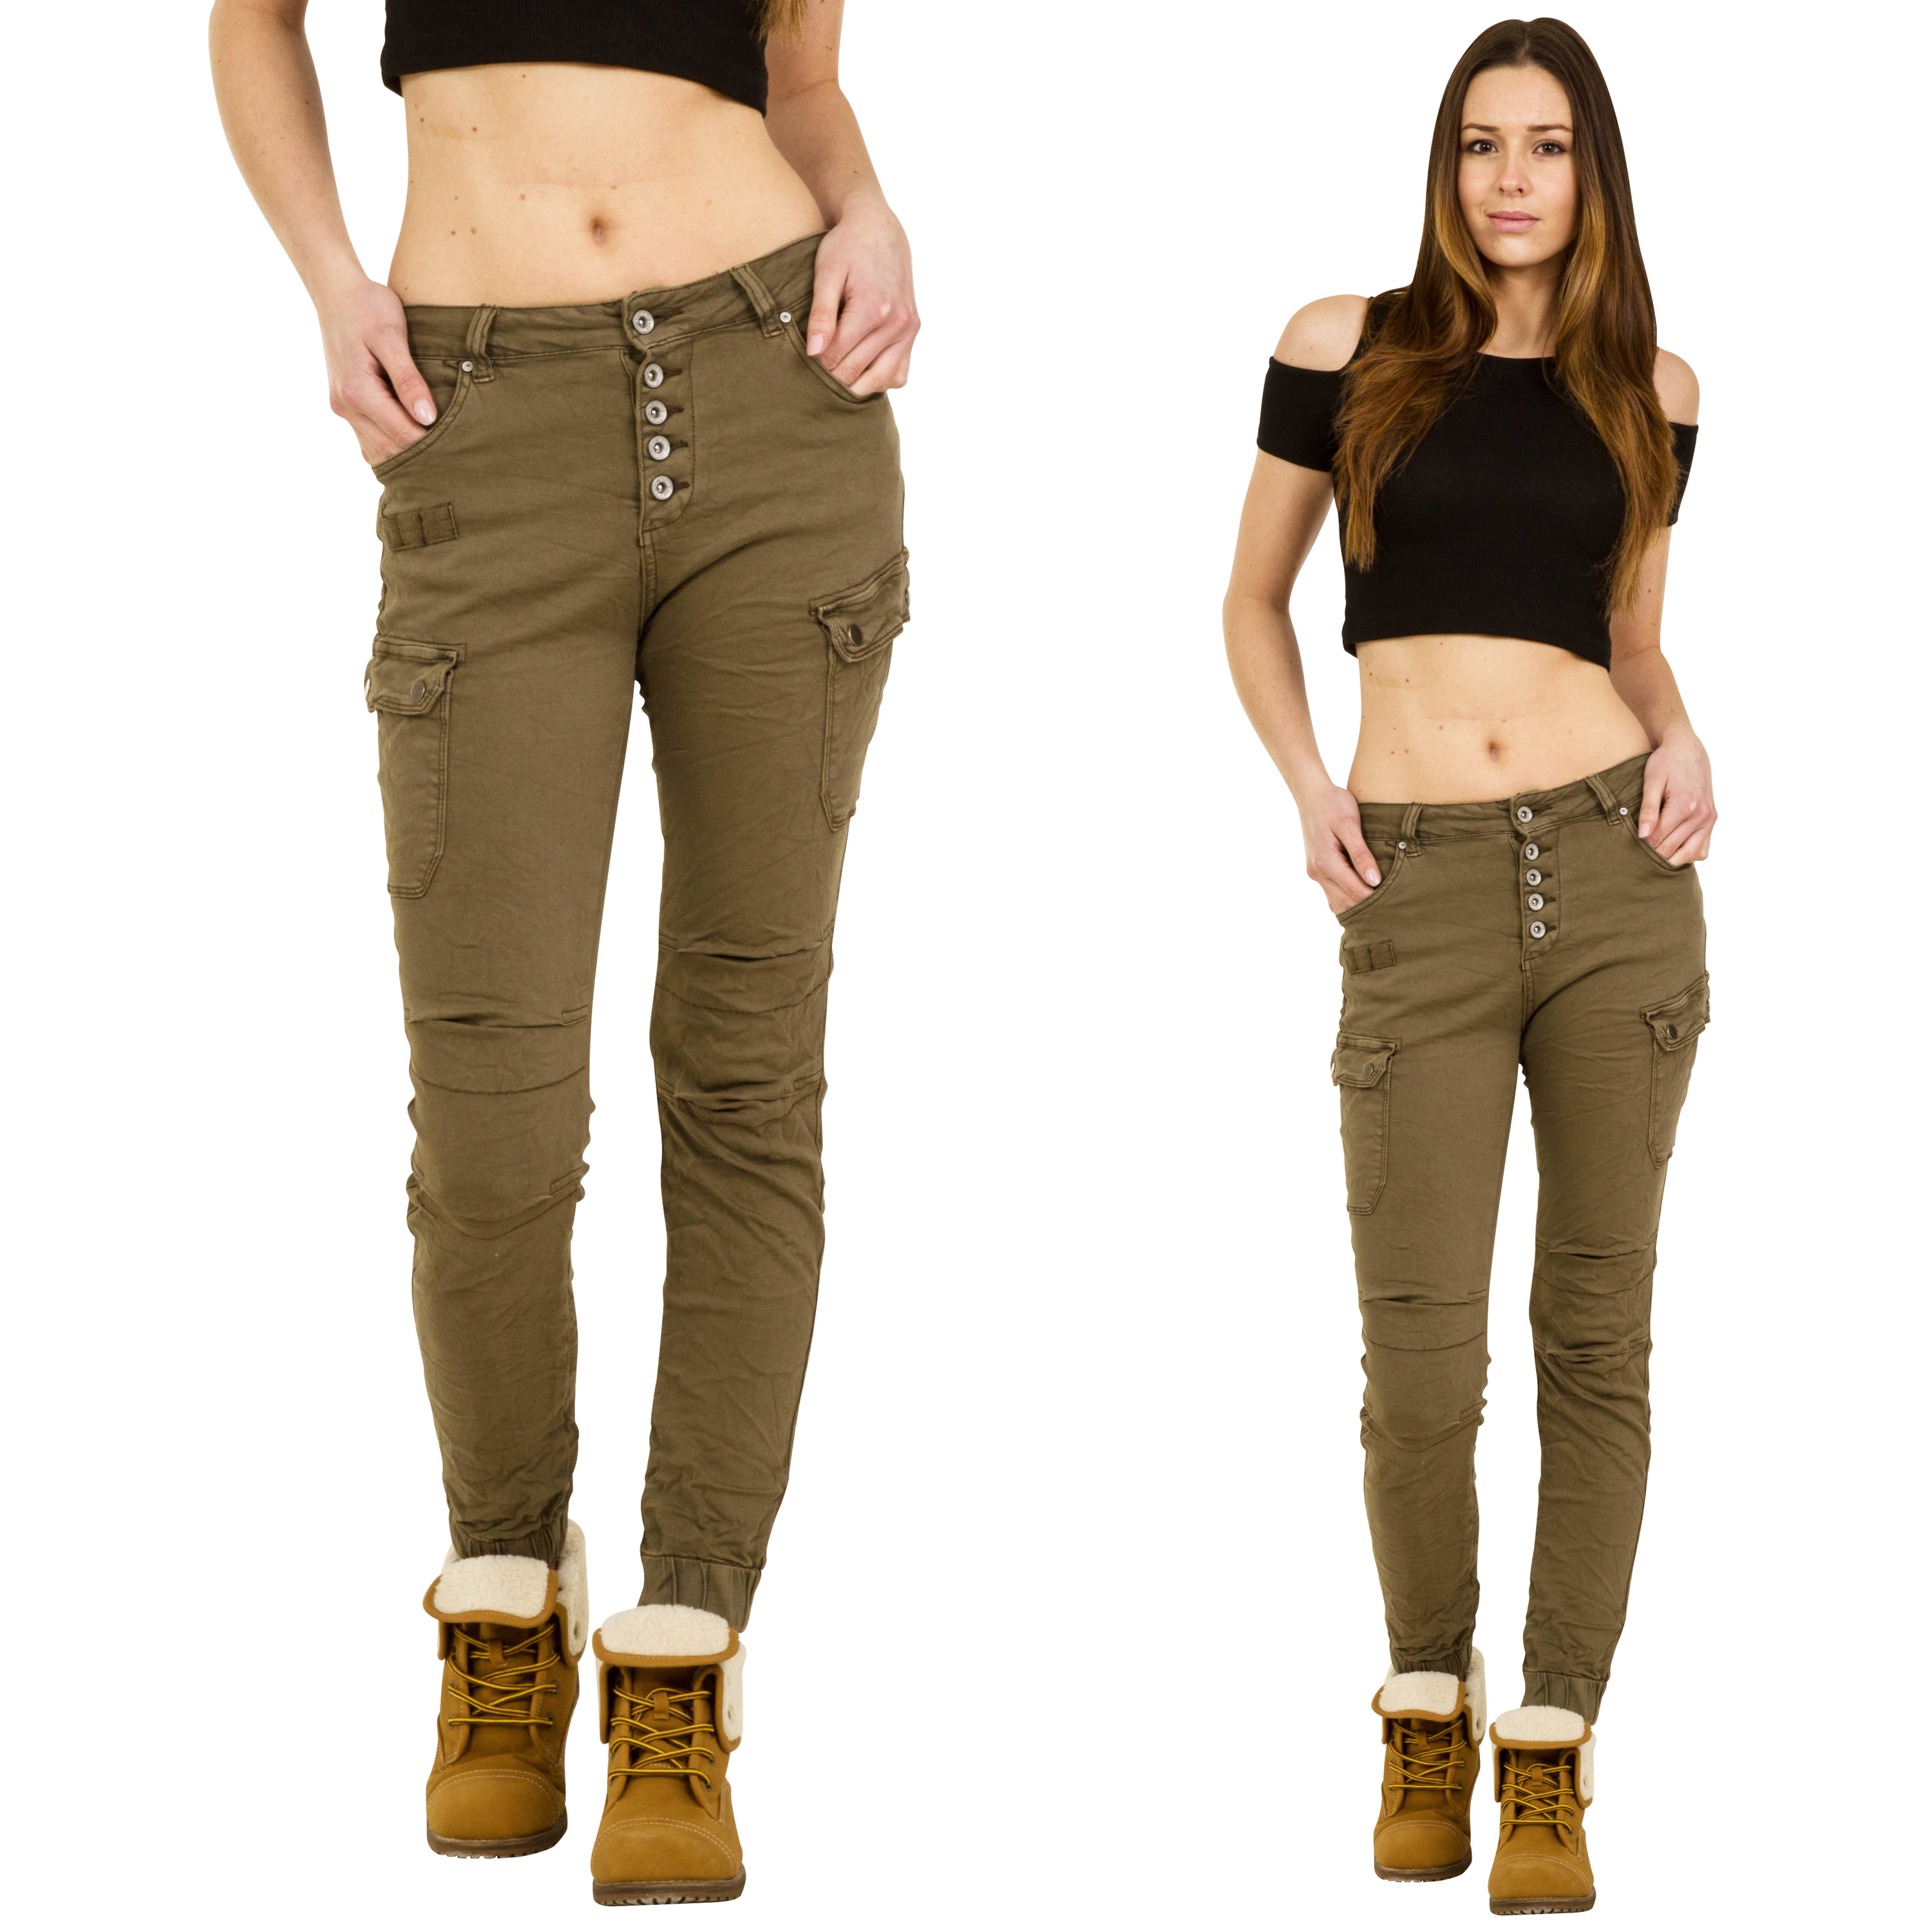 Simple Details About New Womens Khaki Green Slim Combat Pants Skinny Cargo